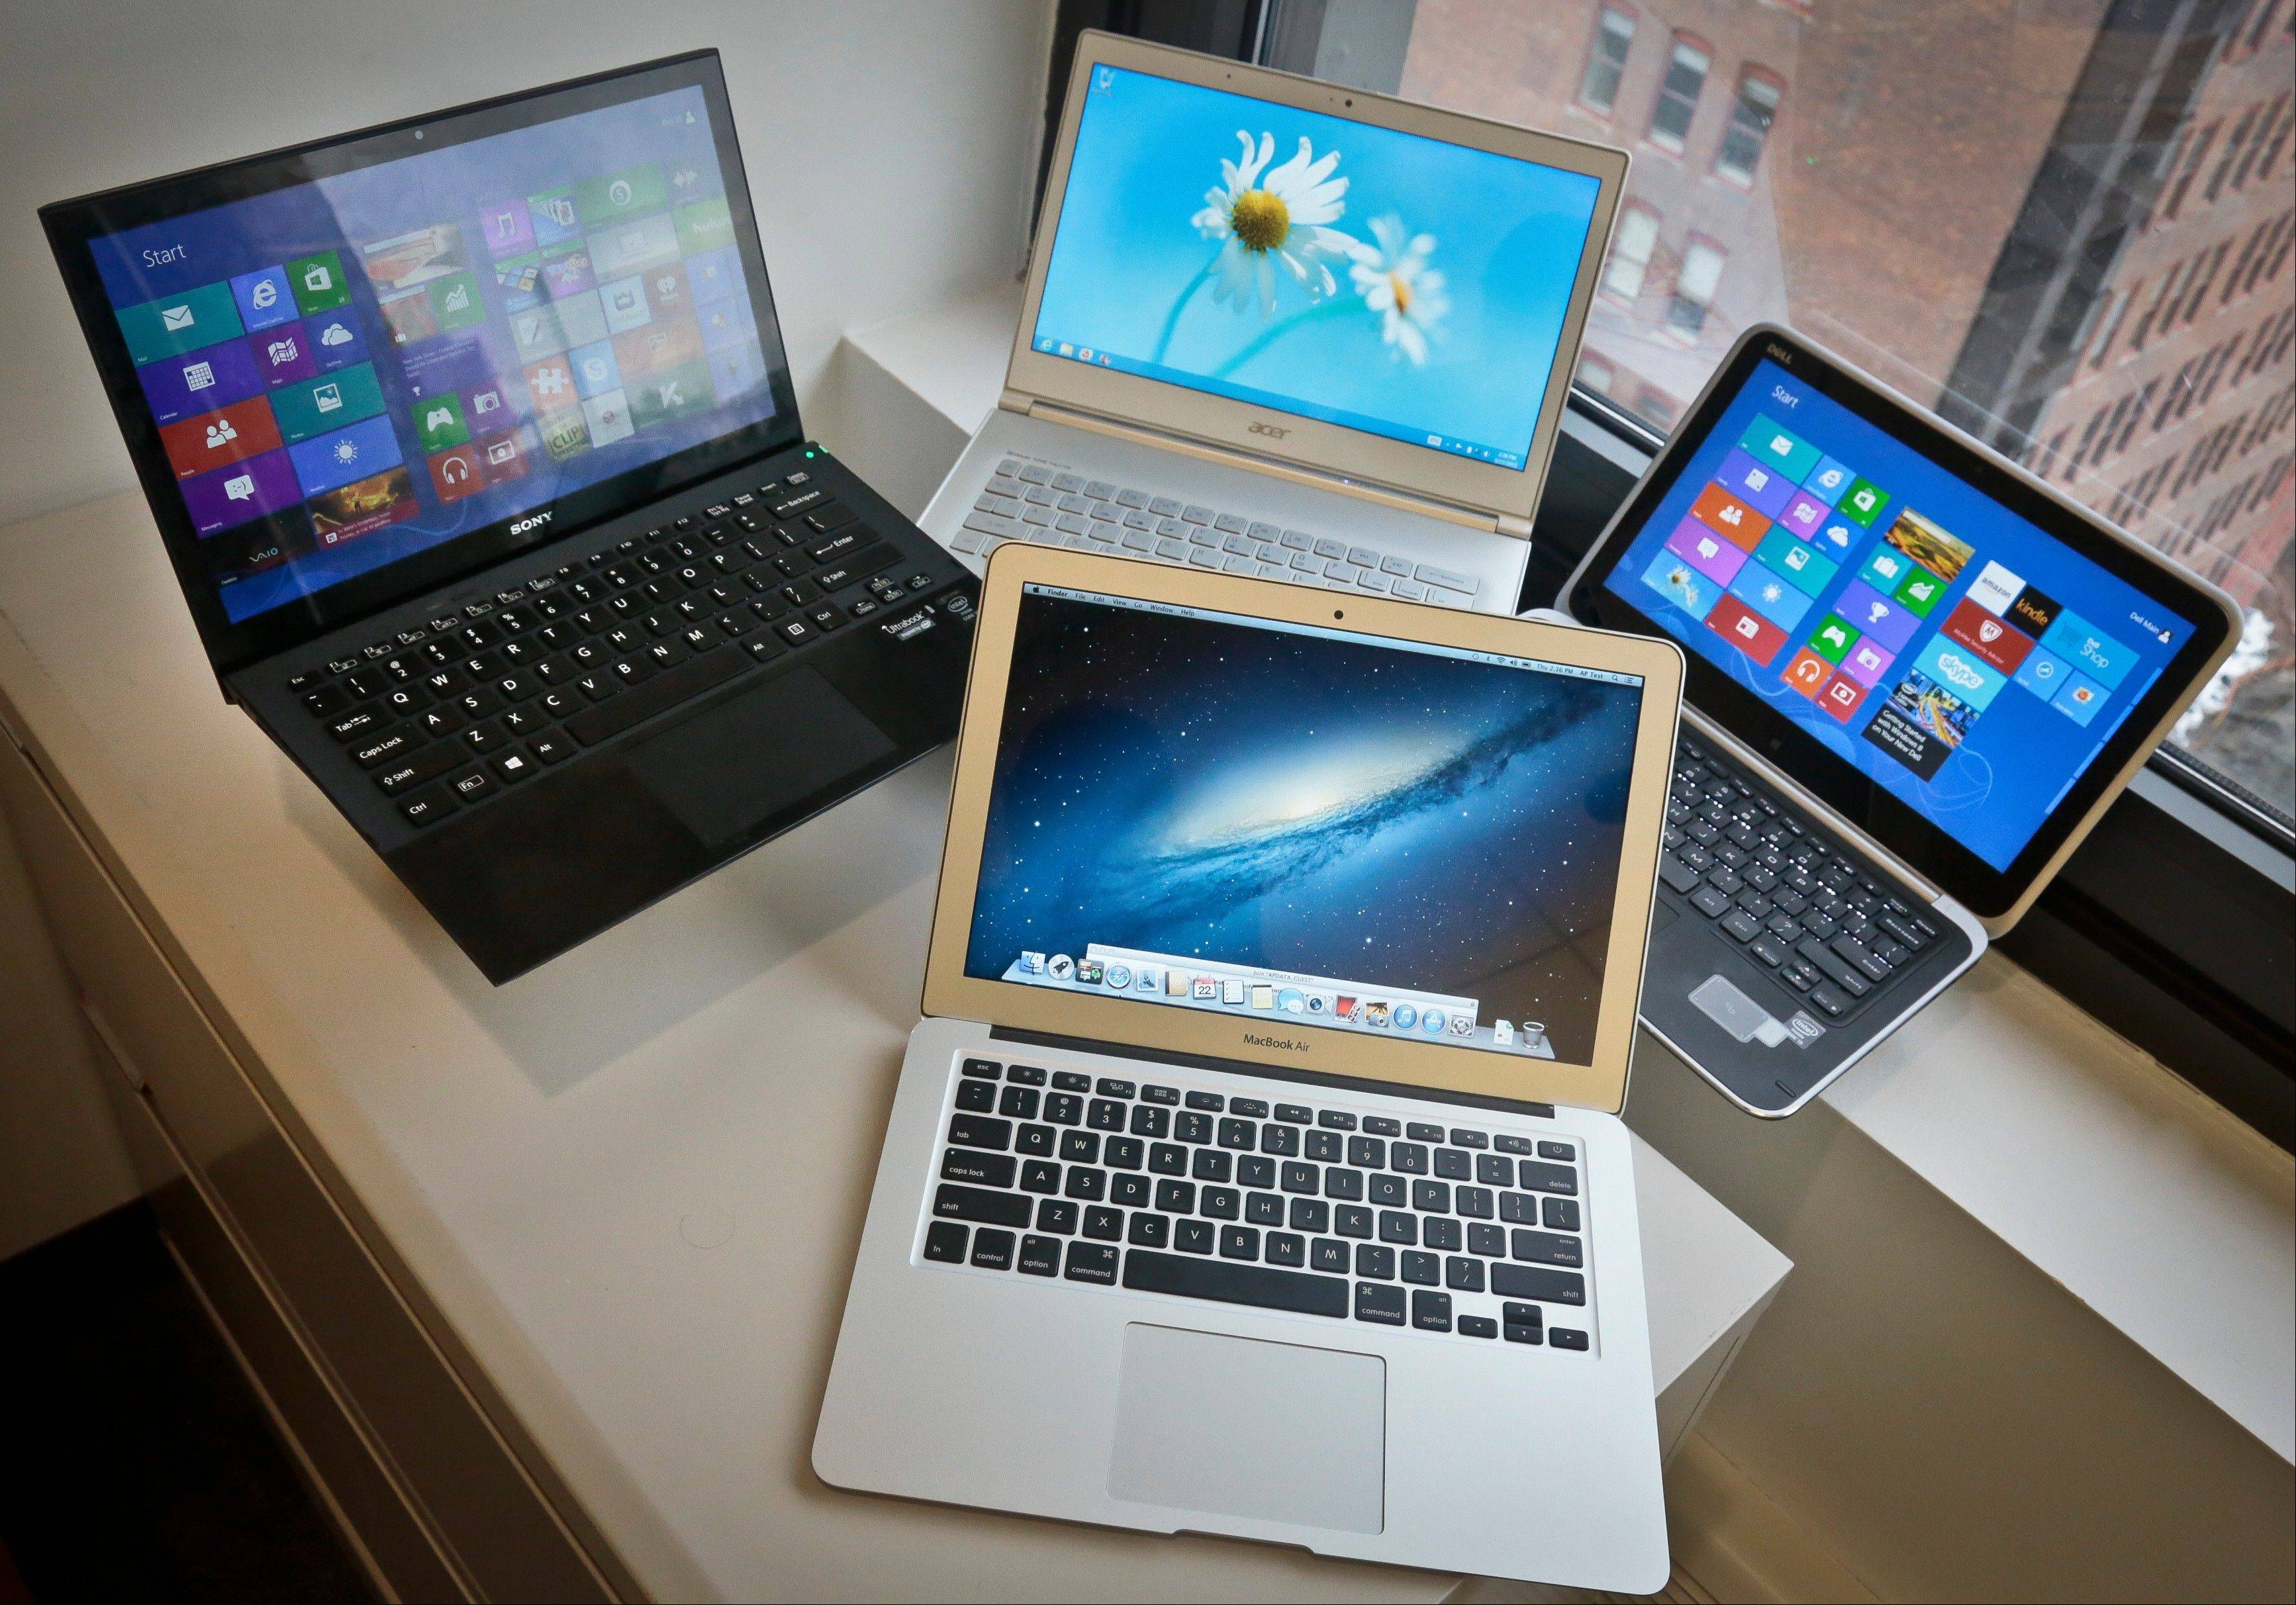 A MacBook Air from Apple, bottom center, a Vaio Pro 13 from Sony, top left, an Aspire S7 from Acer, center, and an XPS 12 from Dell, right, are displayed. Eac